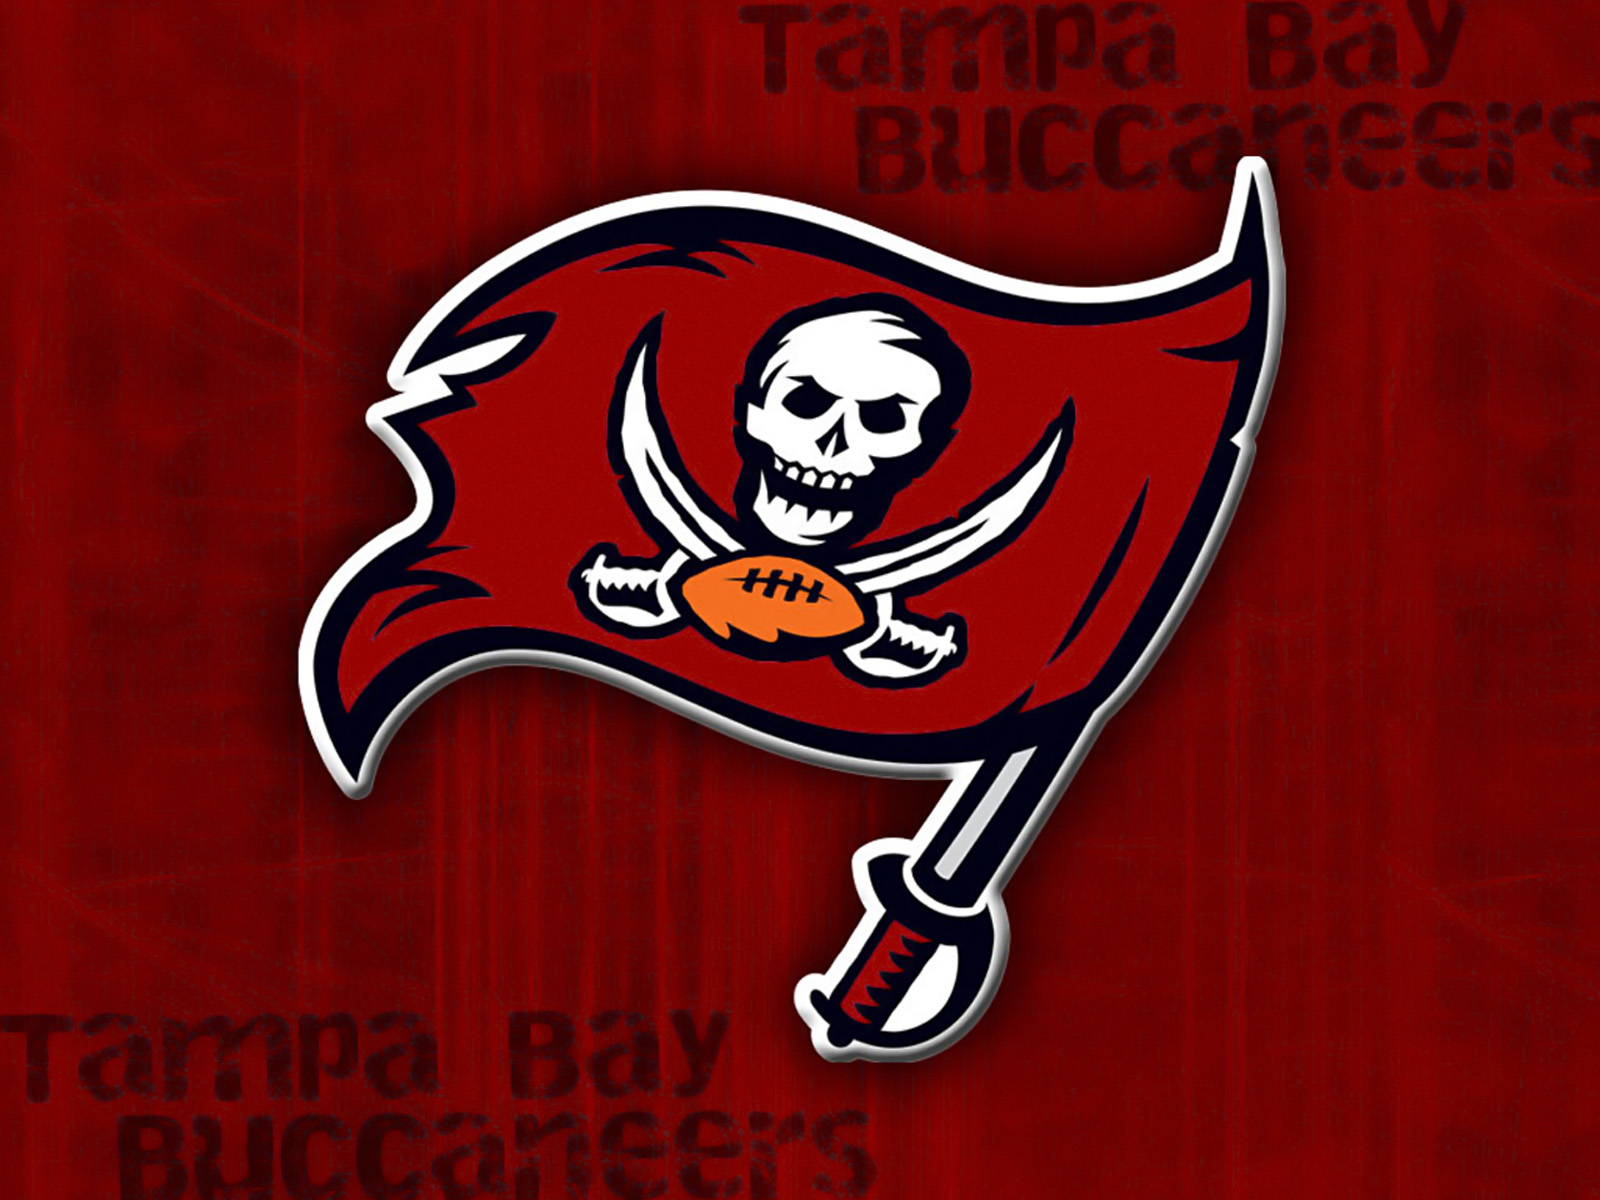 Vancouver Canucks Wallpaper Hd Tampa Bay Buccaneers Flag Red 1600 215 1200 Digital Citizen